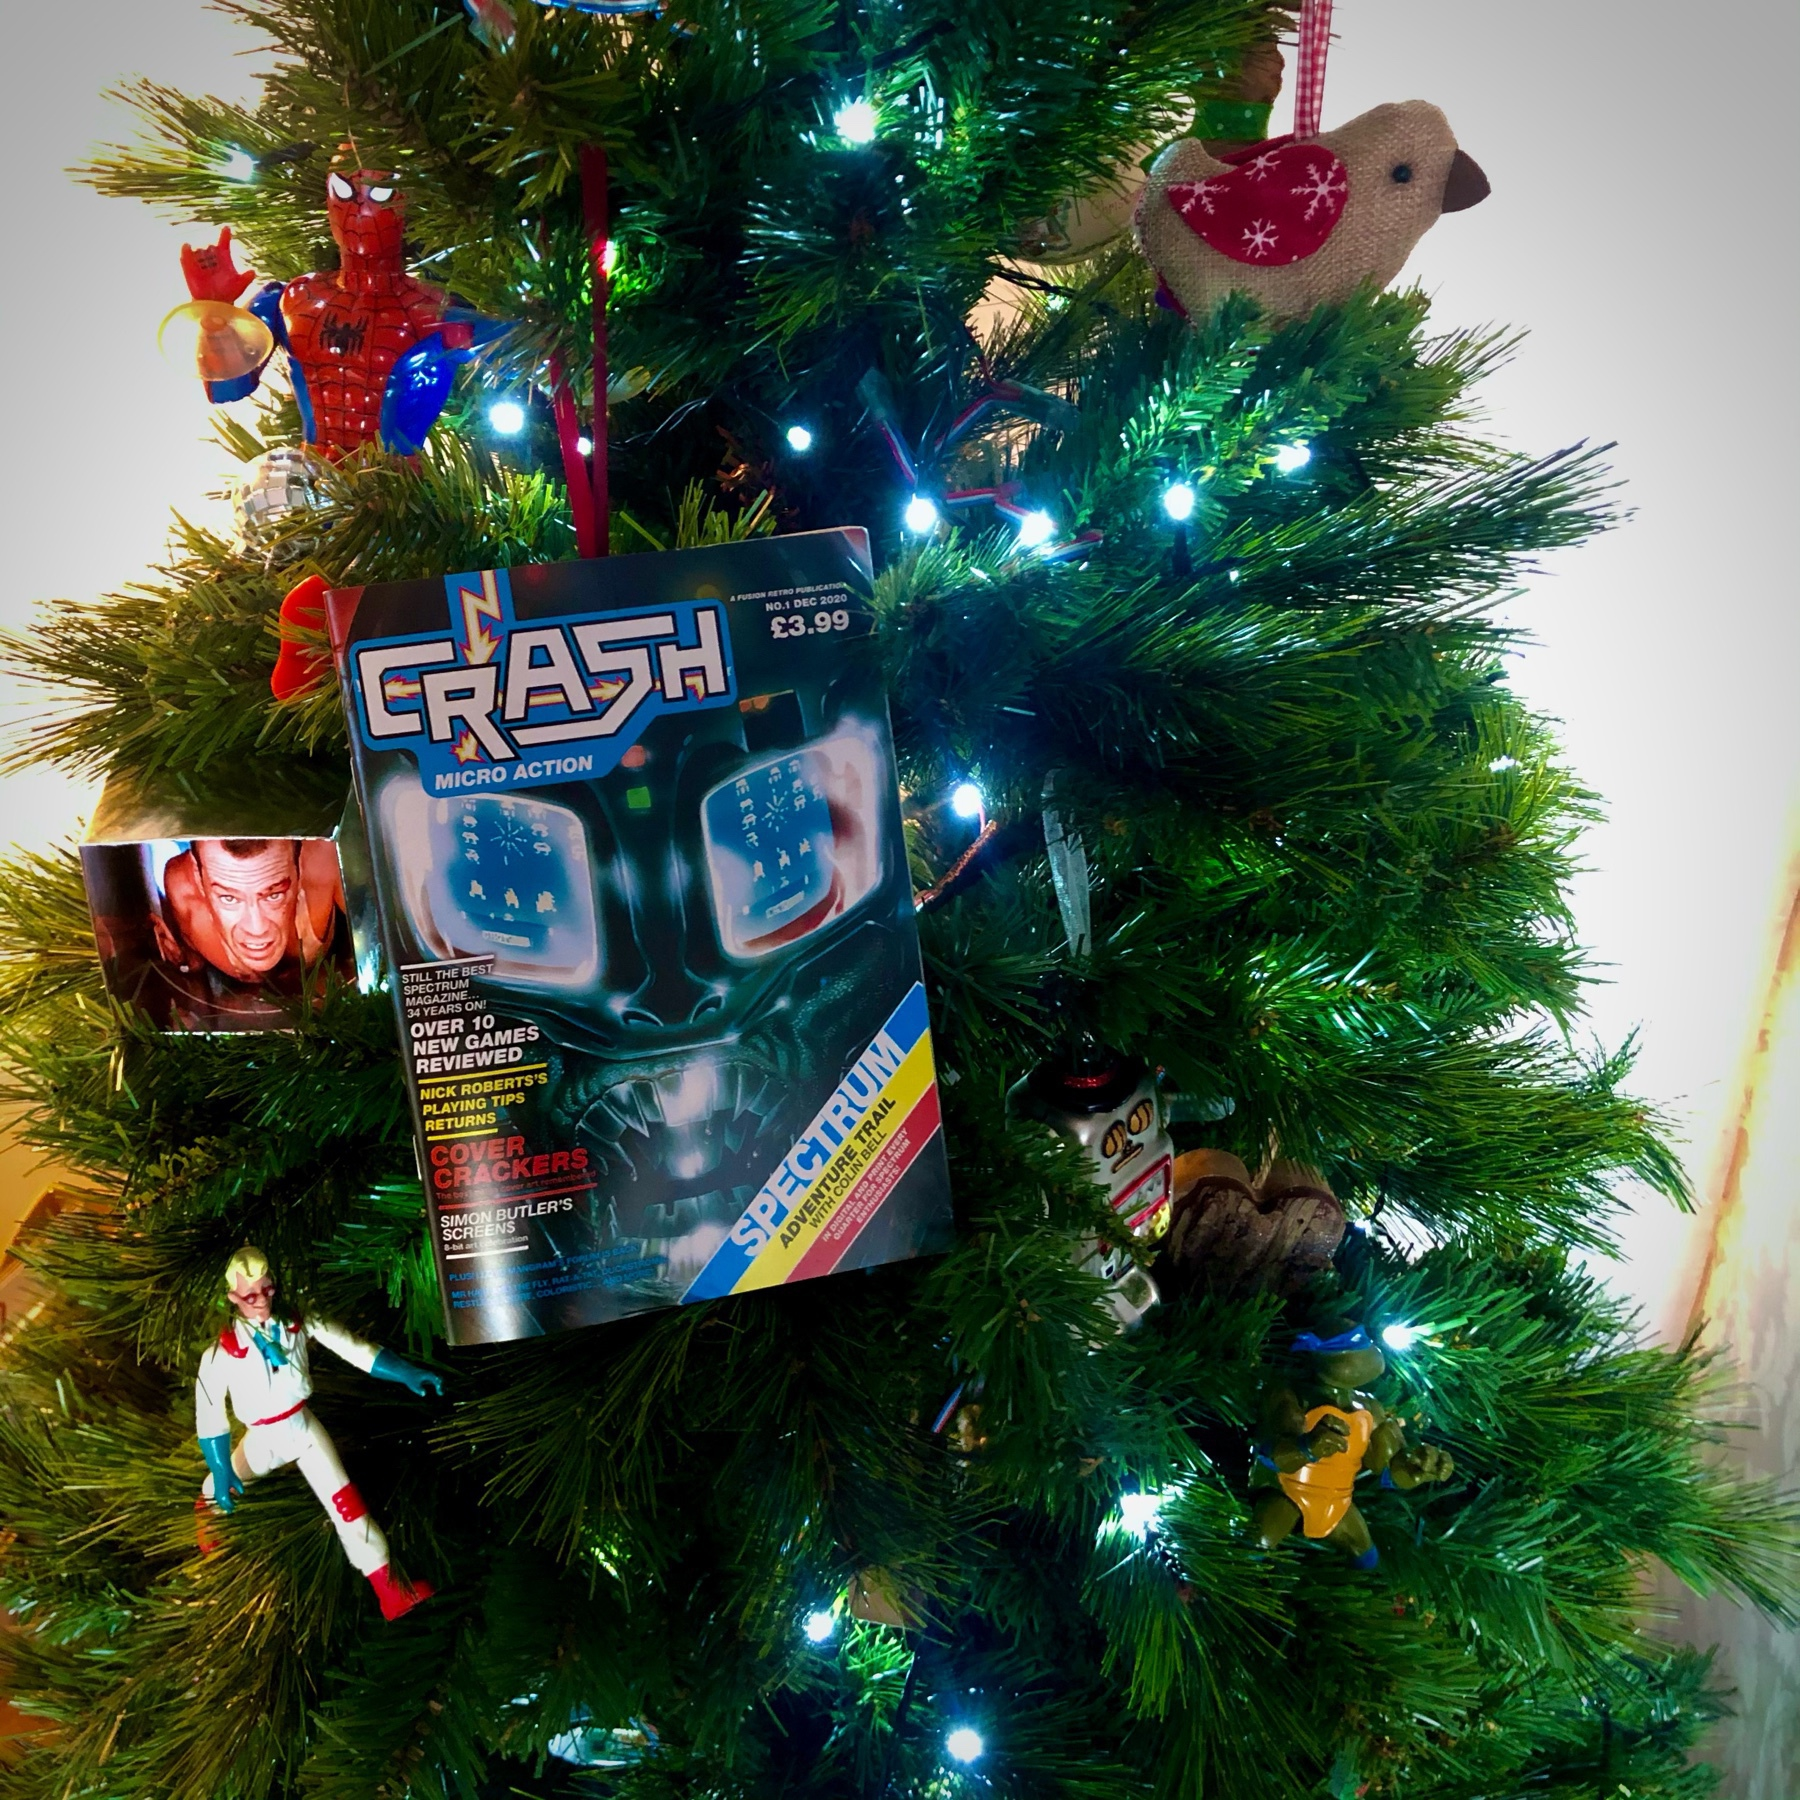 christmas tree decorated with 1980s toys and a 2020 copy of Crash magazine